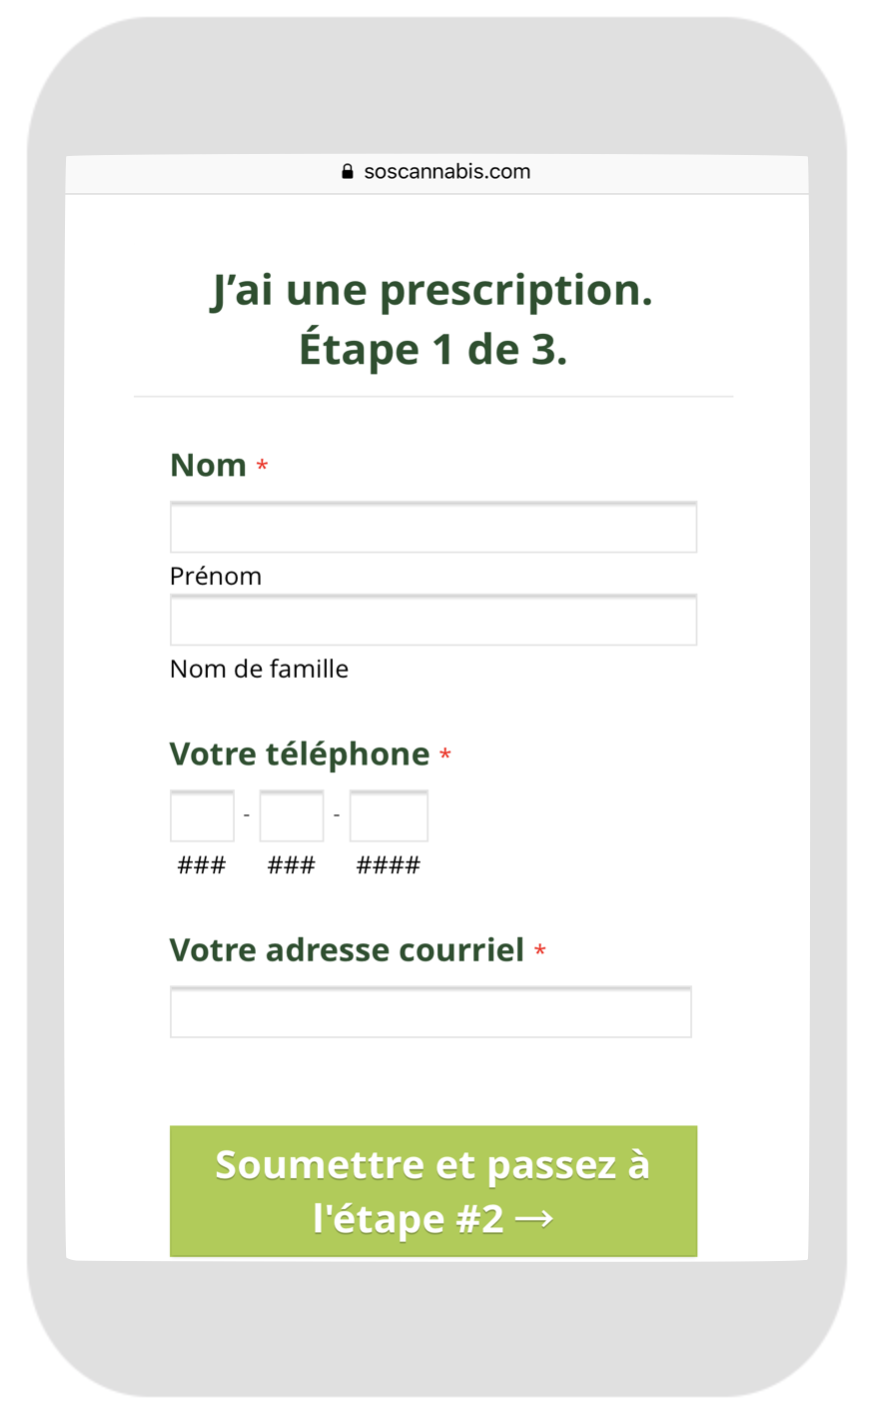 sos-cannabis-phone-UI-sept-2019.png